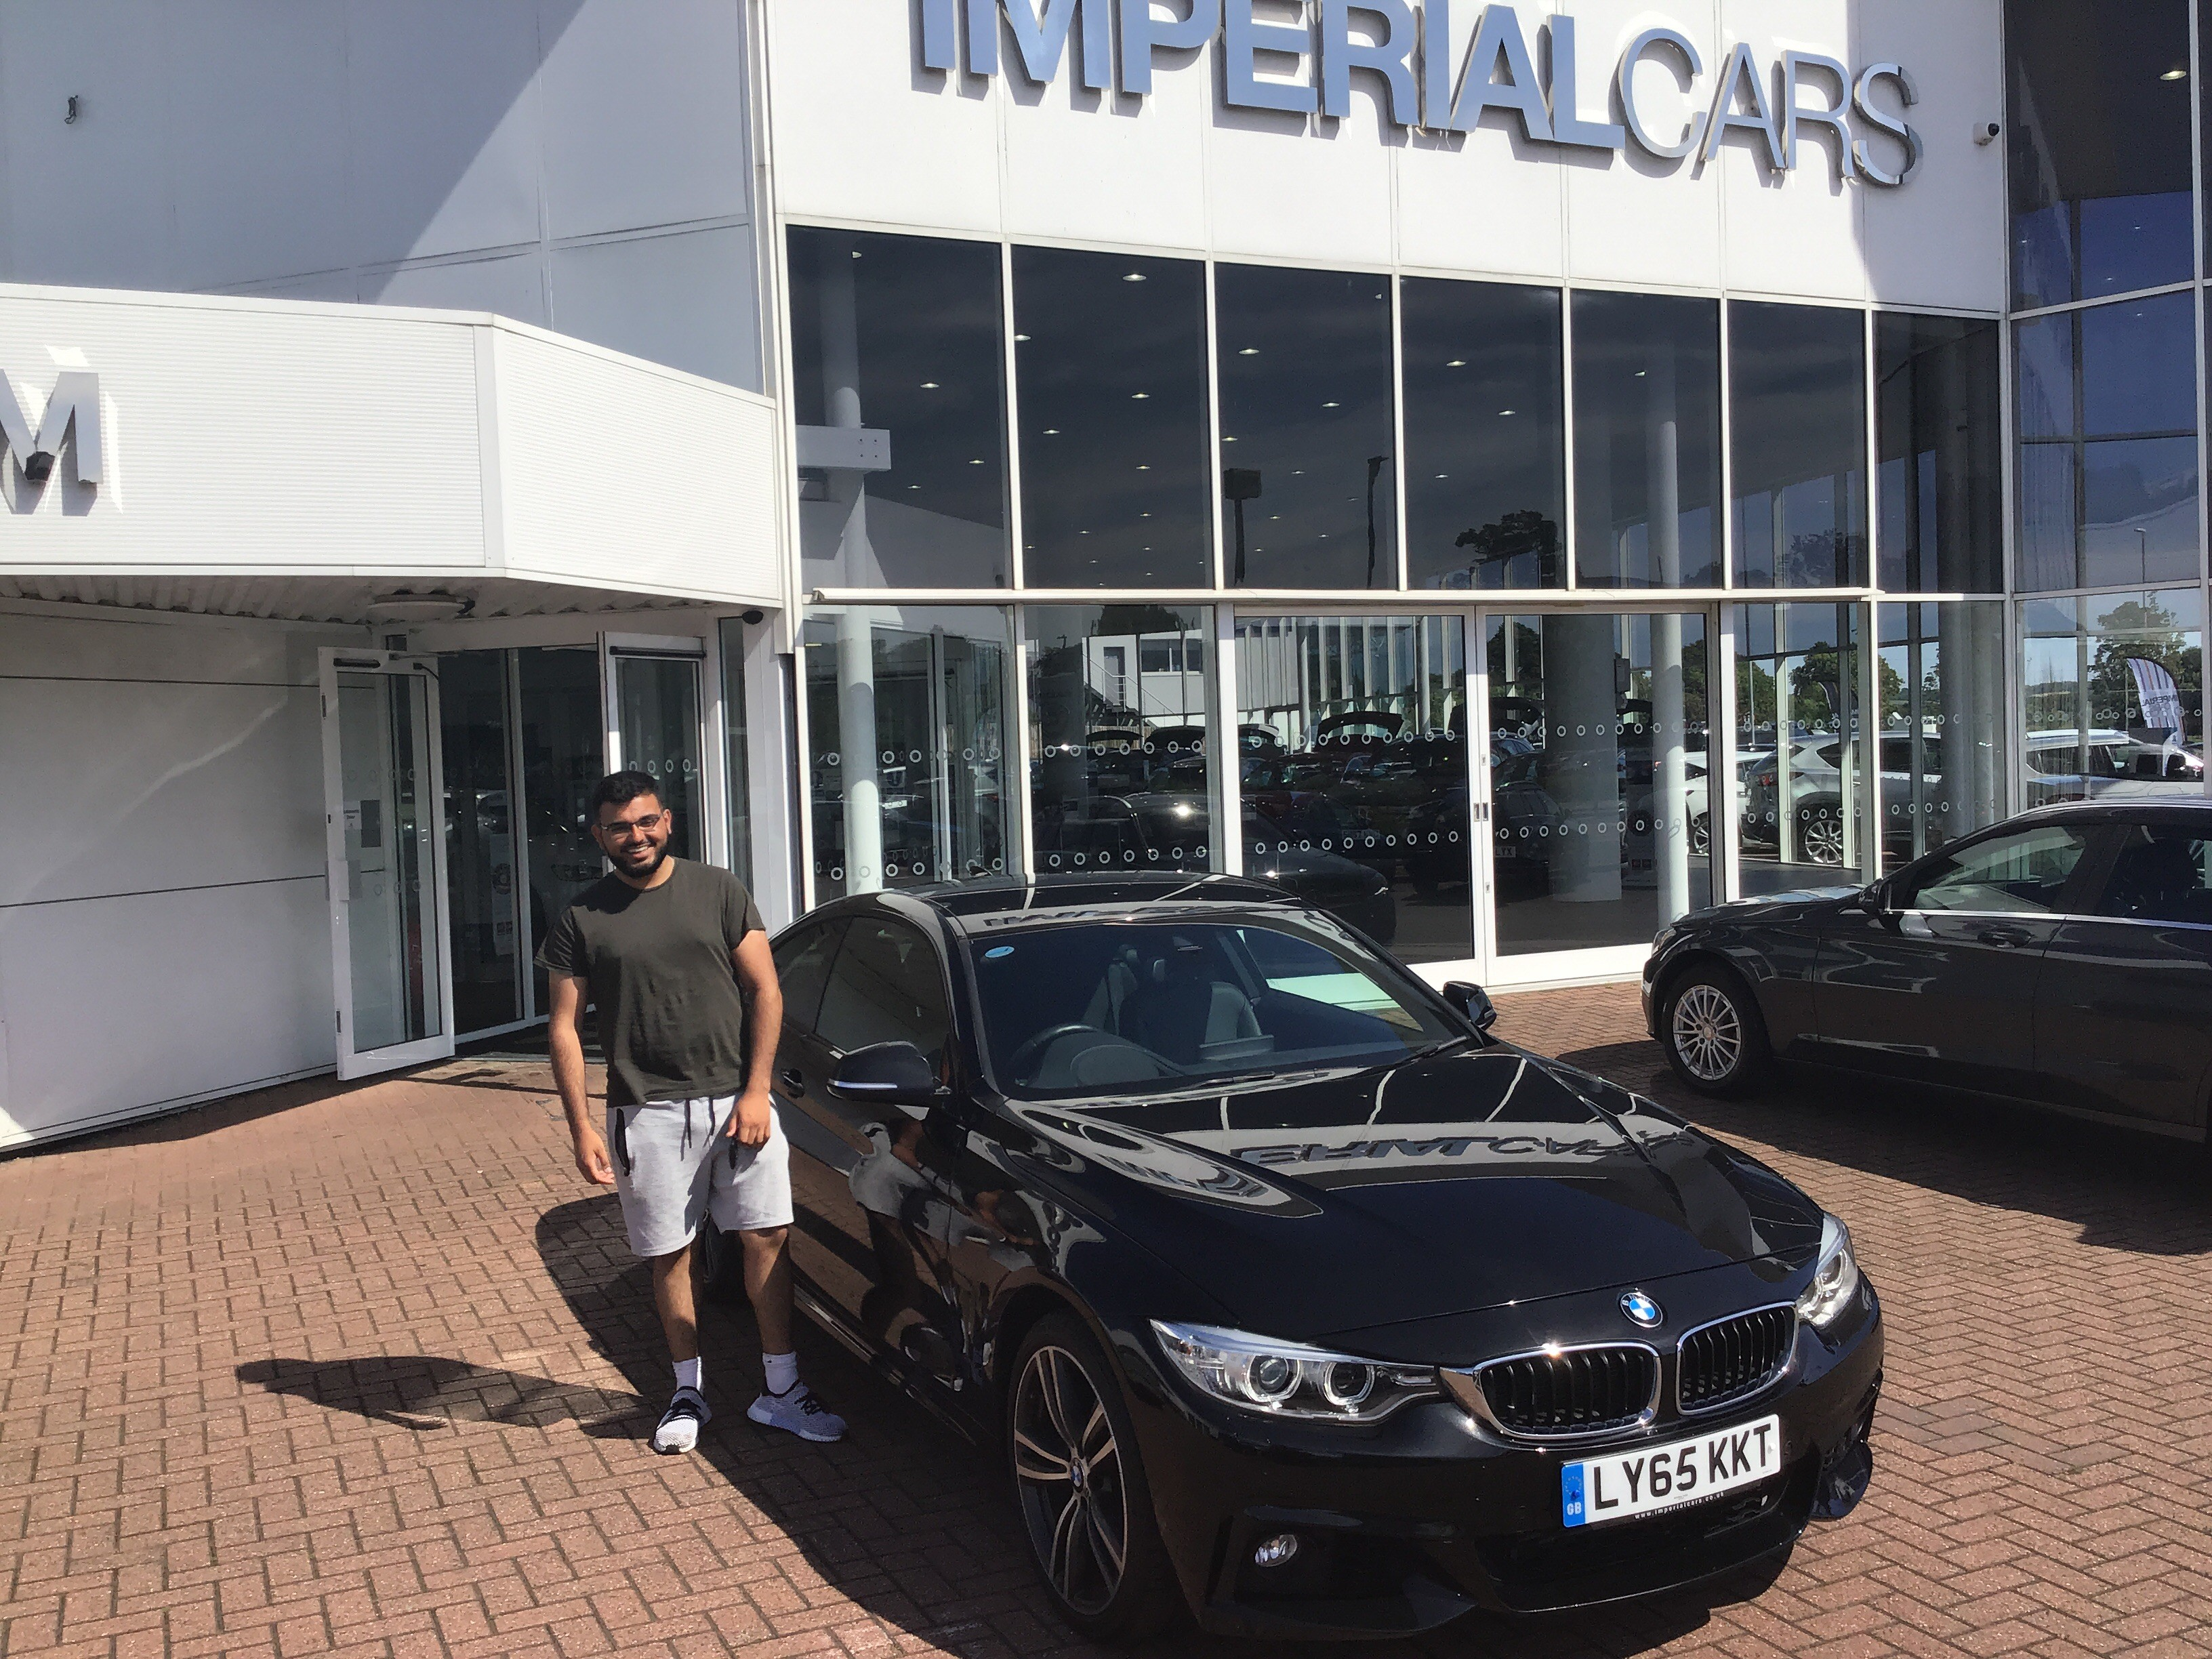 Customer Reviews - Imperial Car Supermarkets